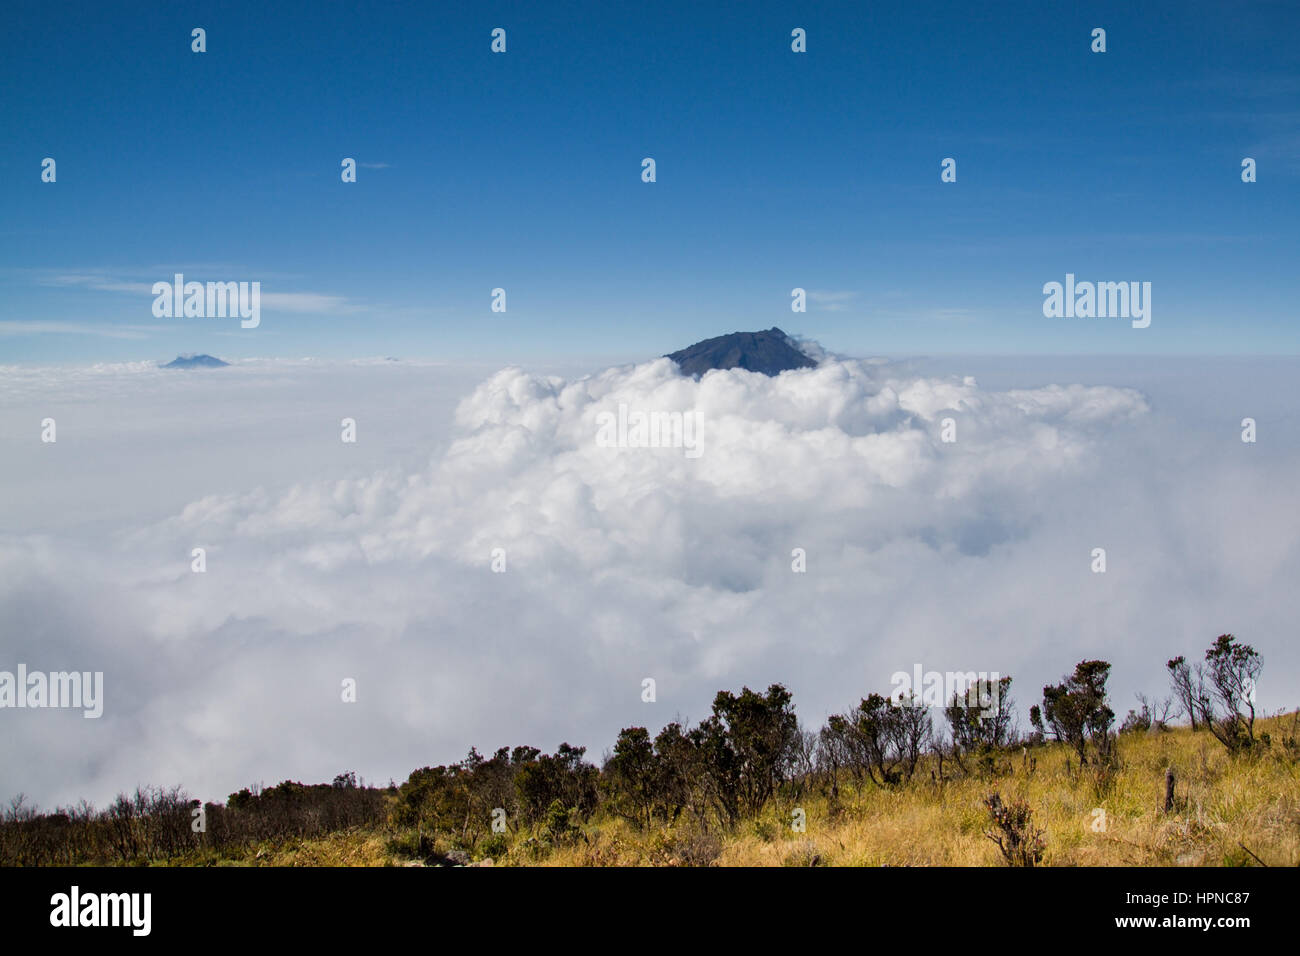 Cloud cover surrounding the volcano of Gunung Sumbing and the mountain landscape surrounding Gunung Sindoro - Stock Image